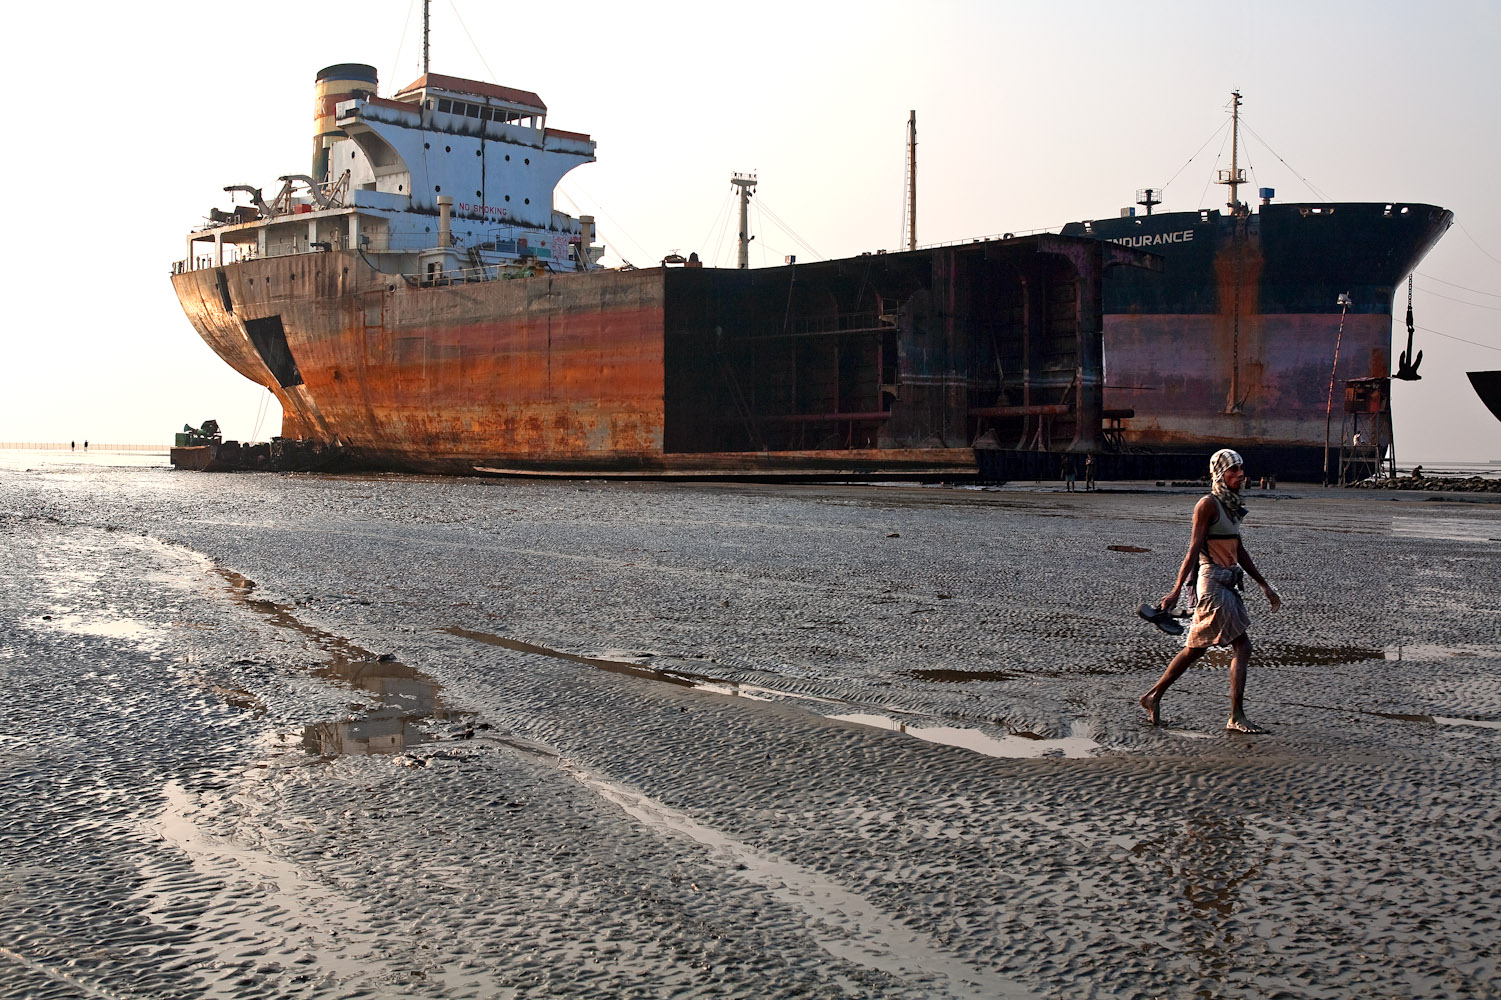 Bangladesh_Ship_Breaking_6737_PRINT